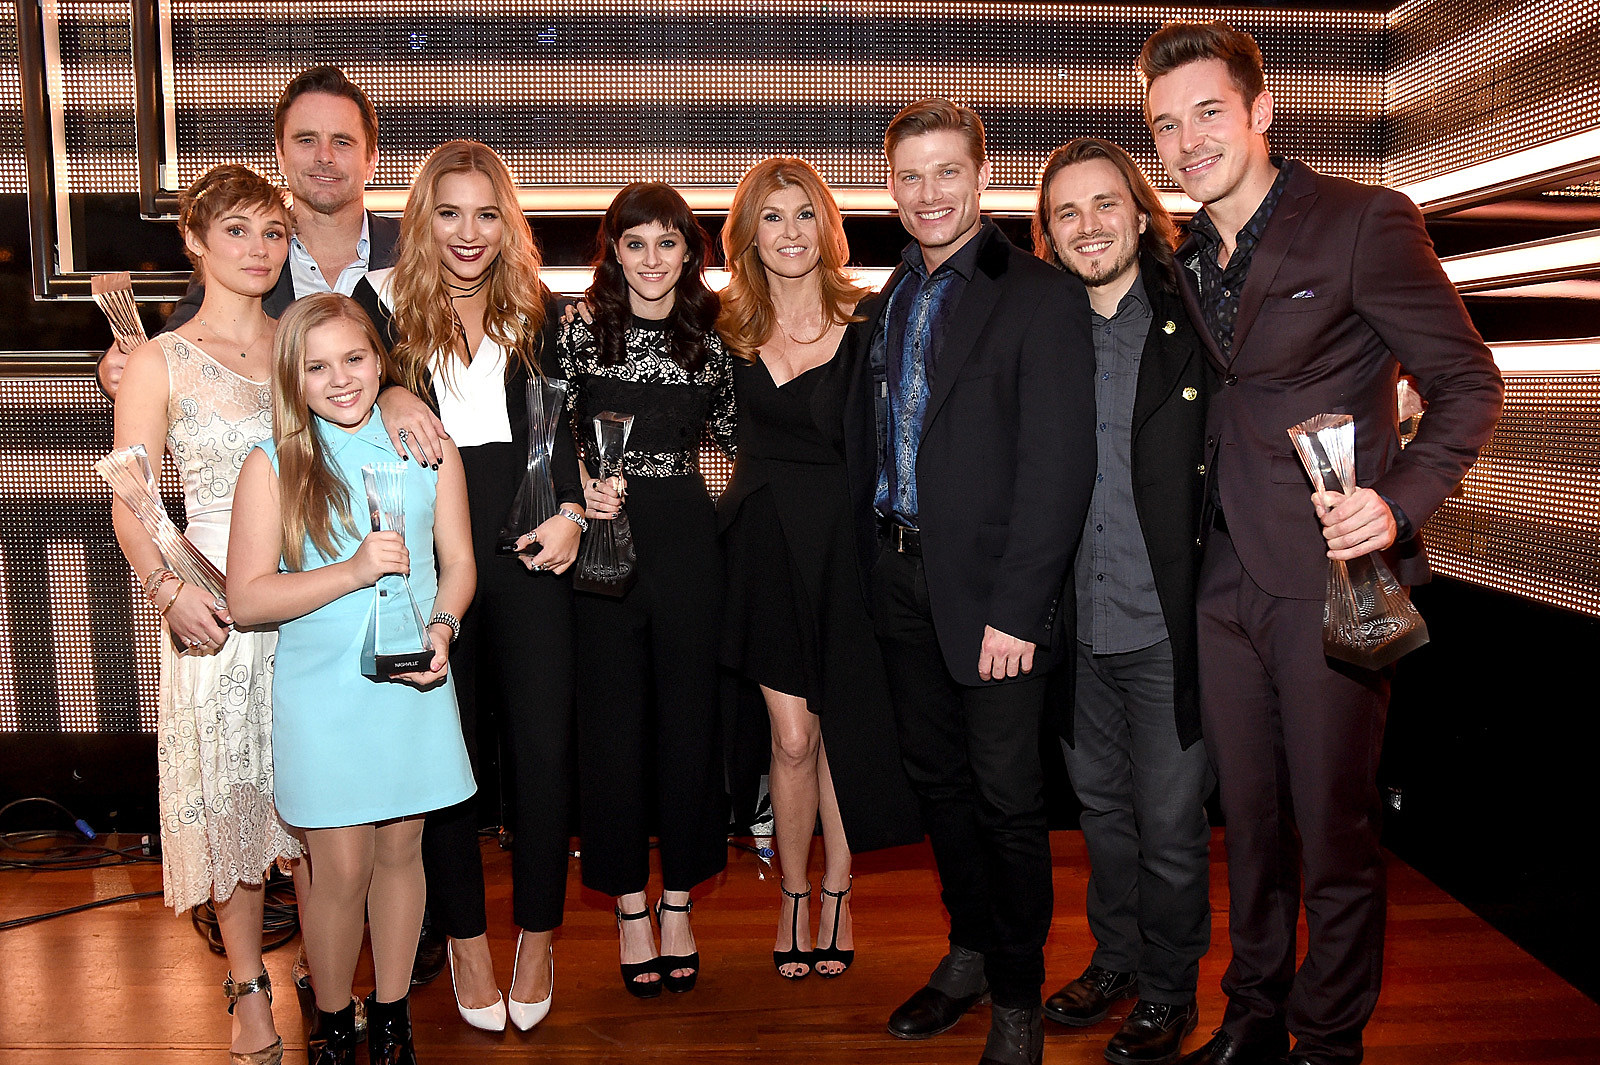 Now, to Speculate: Why Was 'Nashville' Canceled?